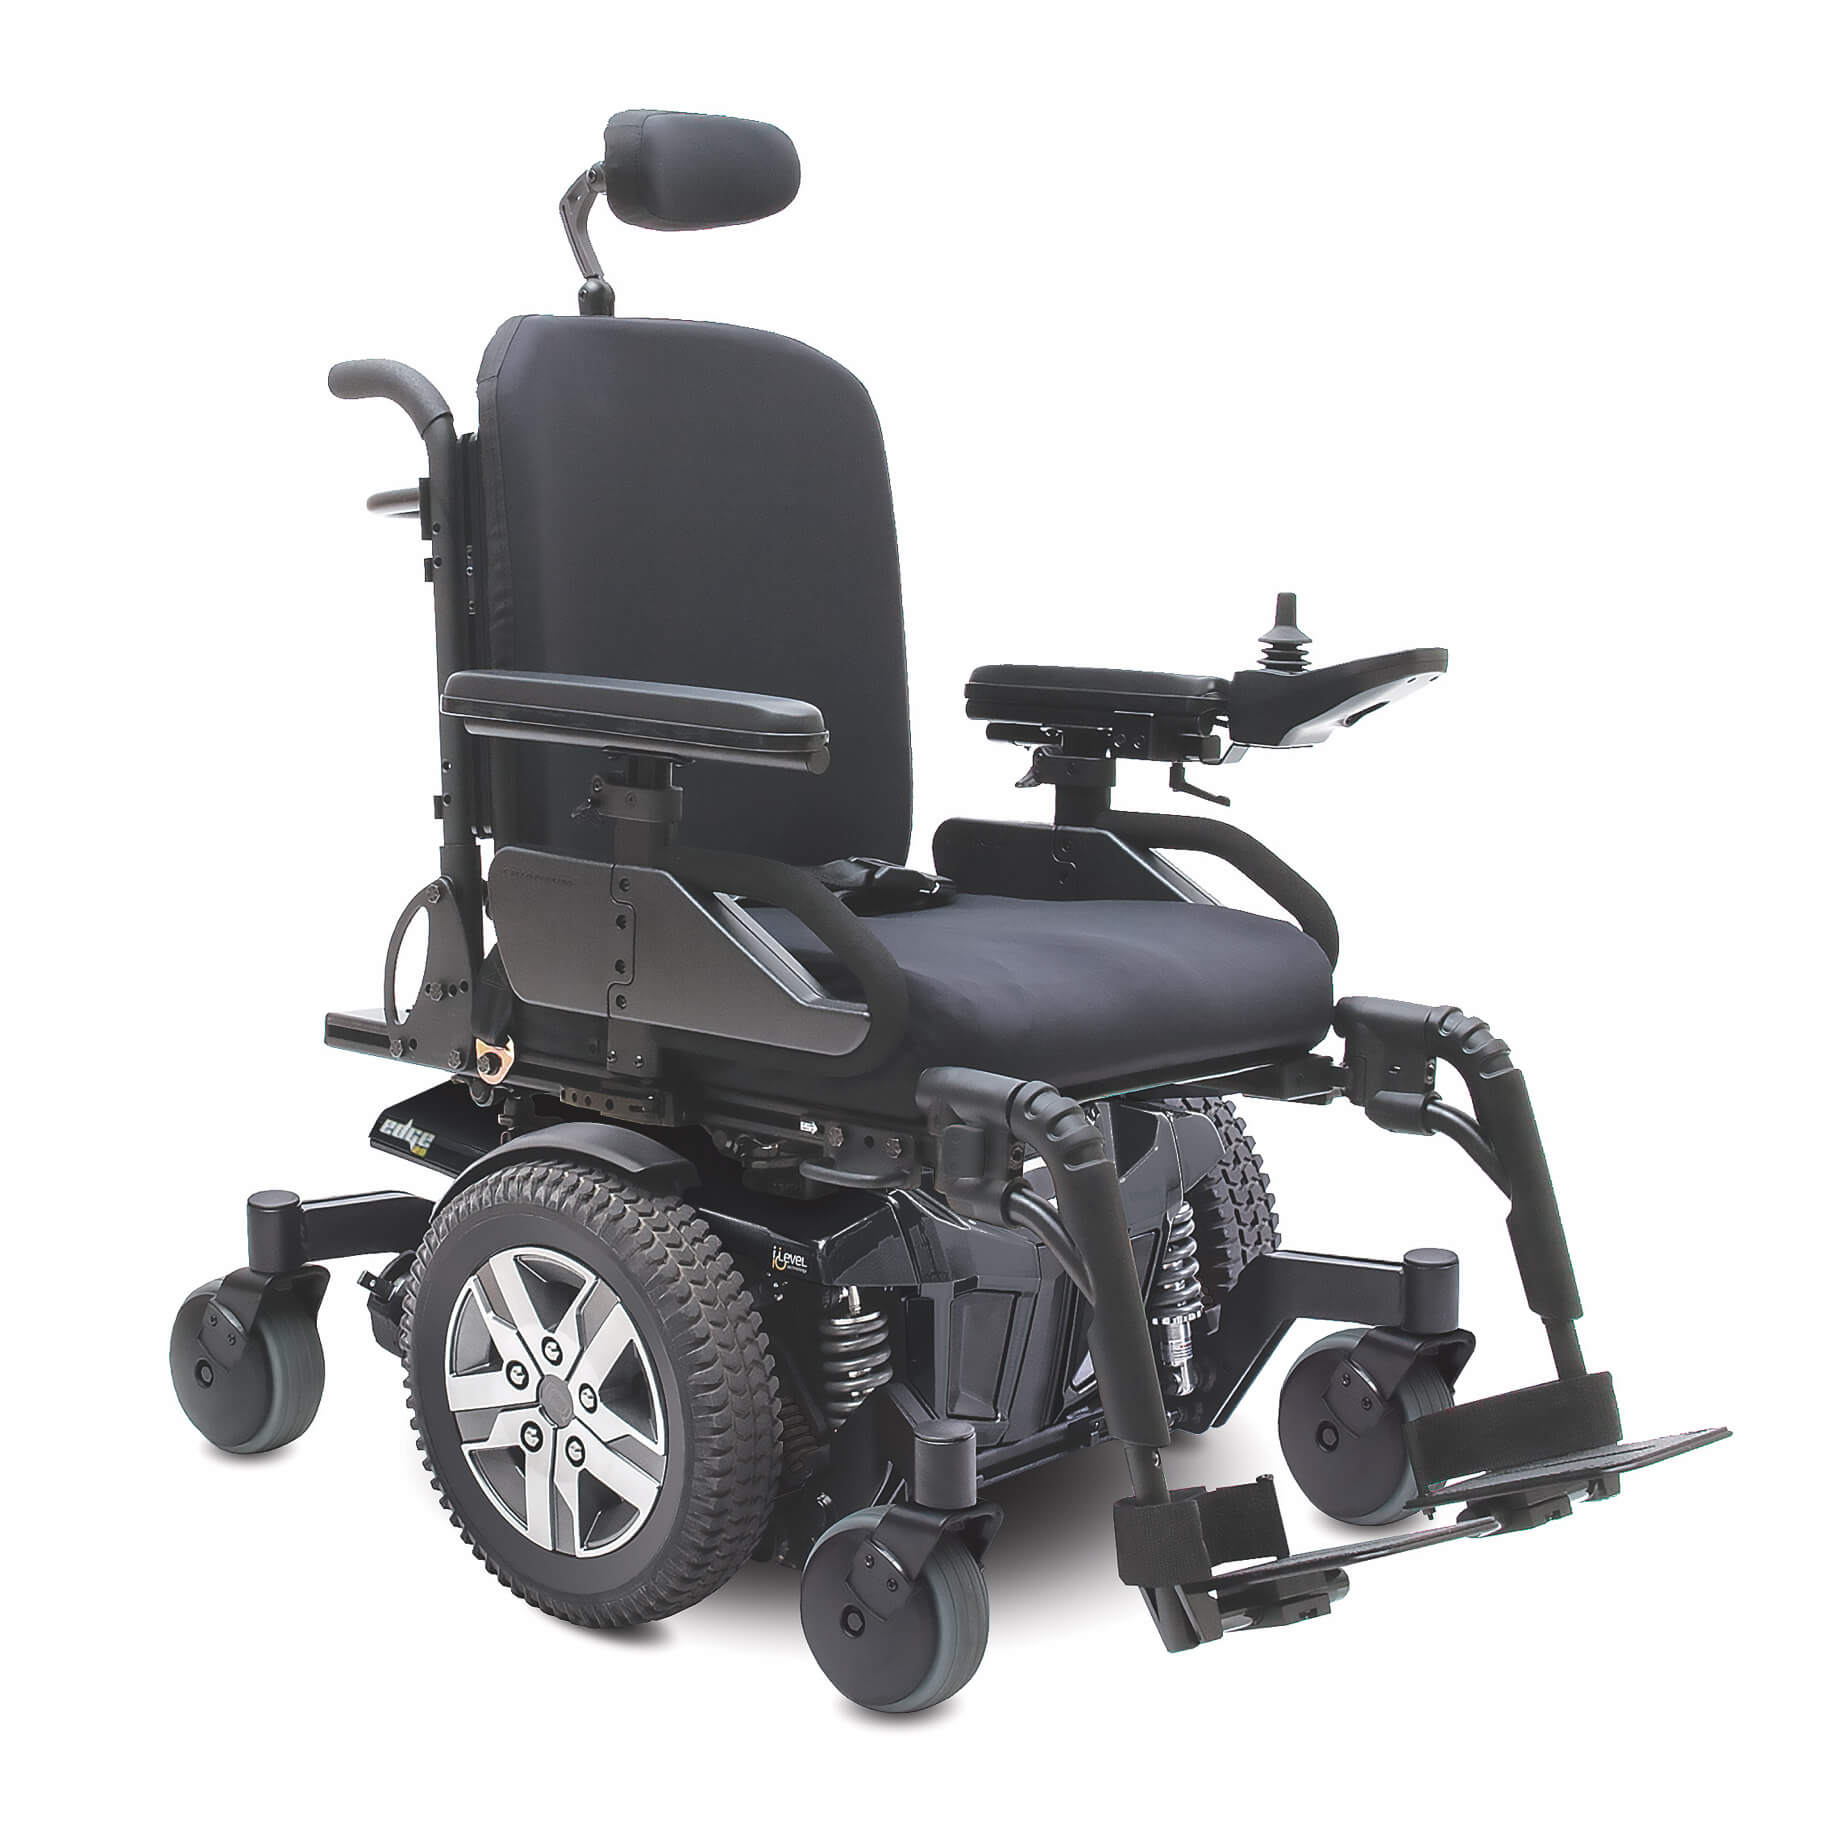 The Quantum Q6 3.0 Edge electric wheelchair